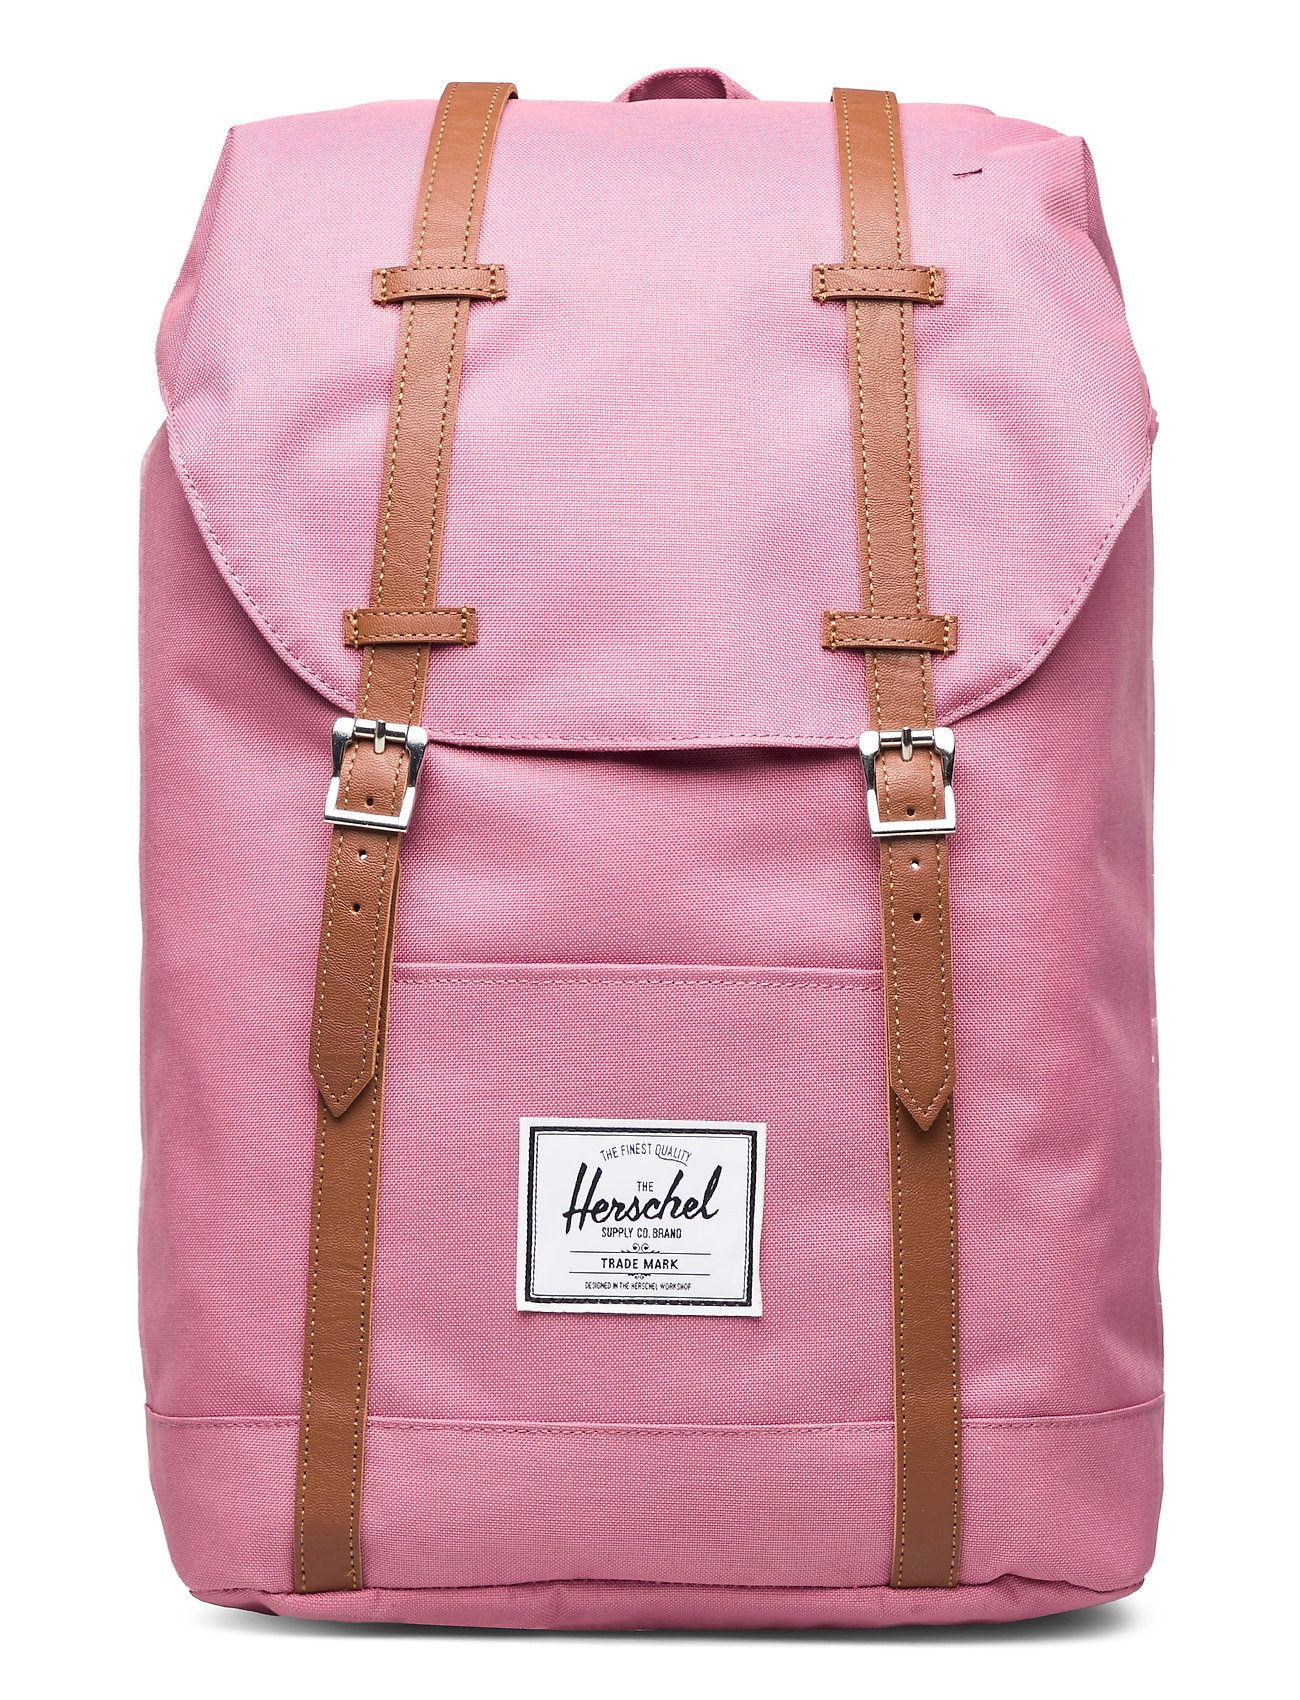 HERSCHEL Rucksack | Retreat-Heather Rose Bags Backpacks Leather Backpacks HERSCHEL